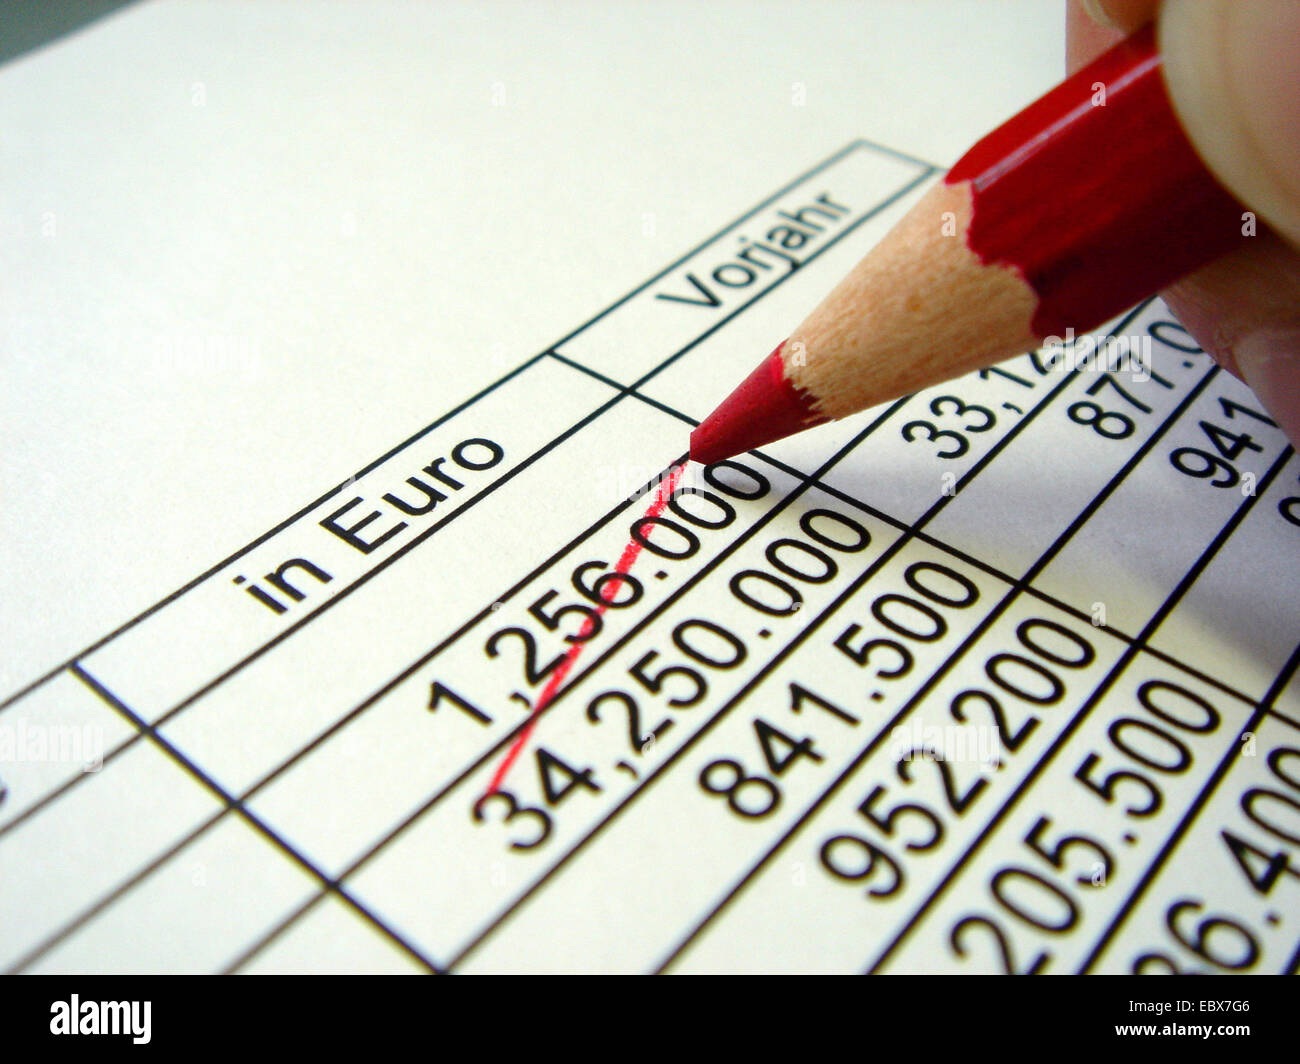 striking out a value on a balance sheet with a red pencil - Stock Image